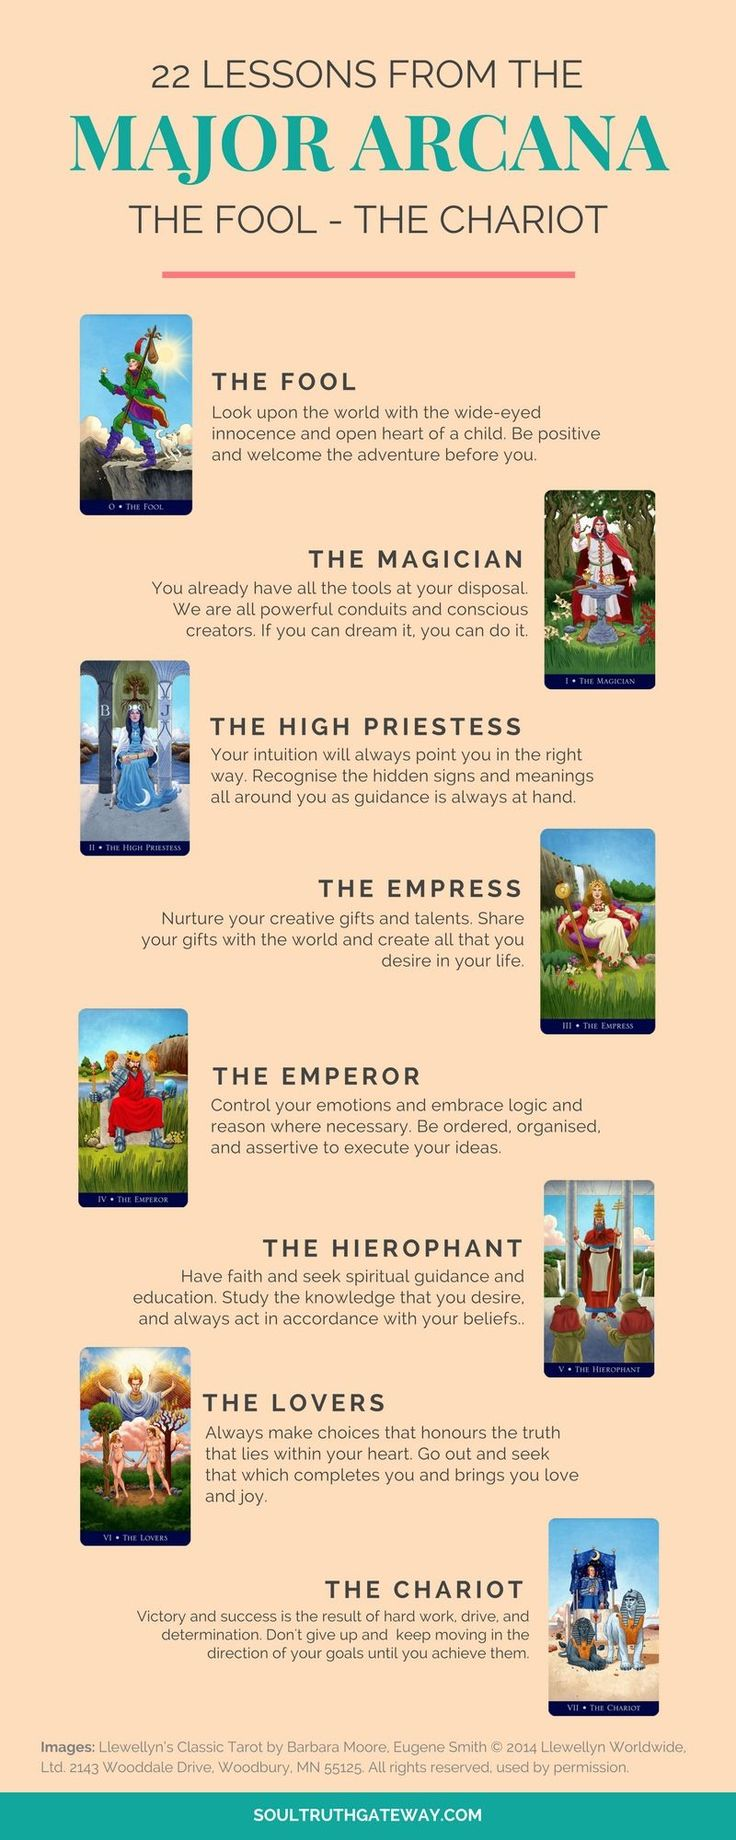 22 Lessons from the Major Arcana Part 1: The Fool - The Chariot | Tarot Card Meanings | Tarot Card Meanings Cheat Sheets | Tarot Cheat Sheet | Tarot Major Arcana | Tarot Major Arcana Meanings | Fools Journey Tarot #tarot #soultruthgateway #tarotcardscheatsheets